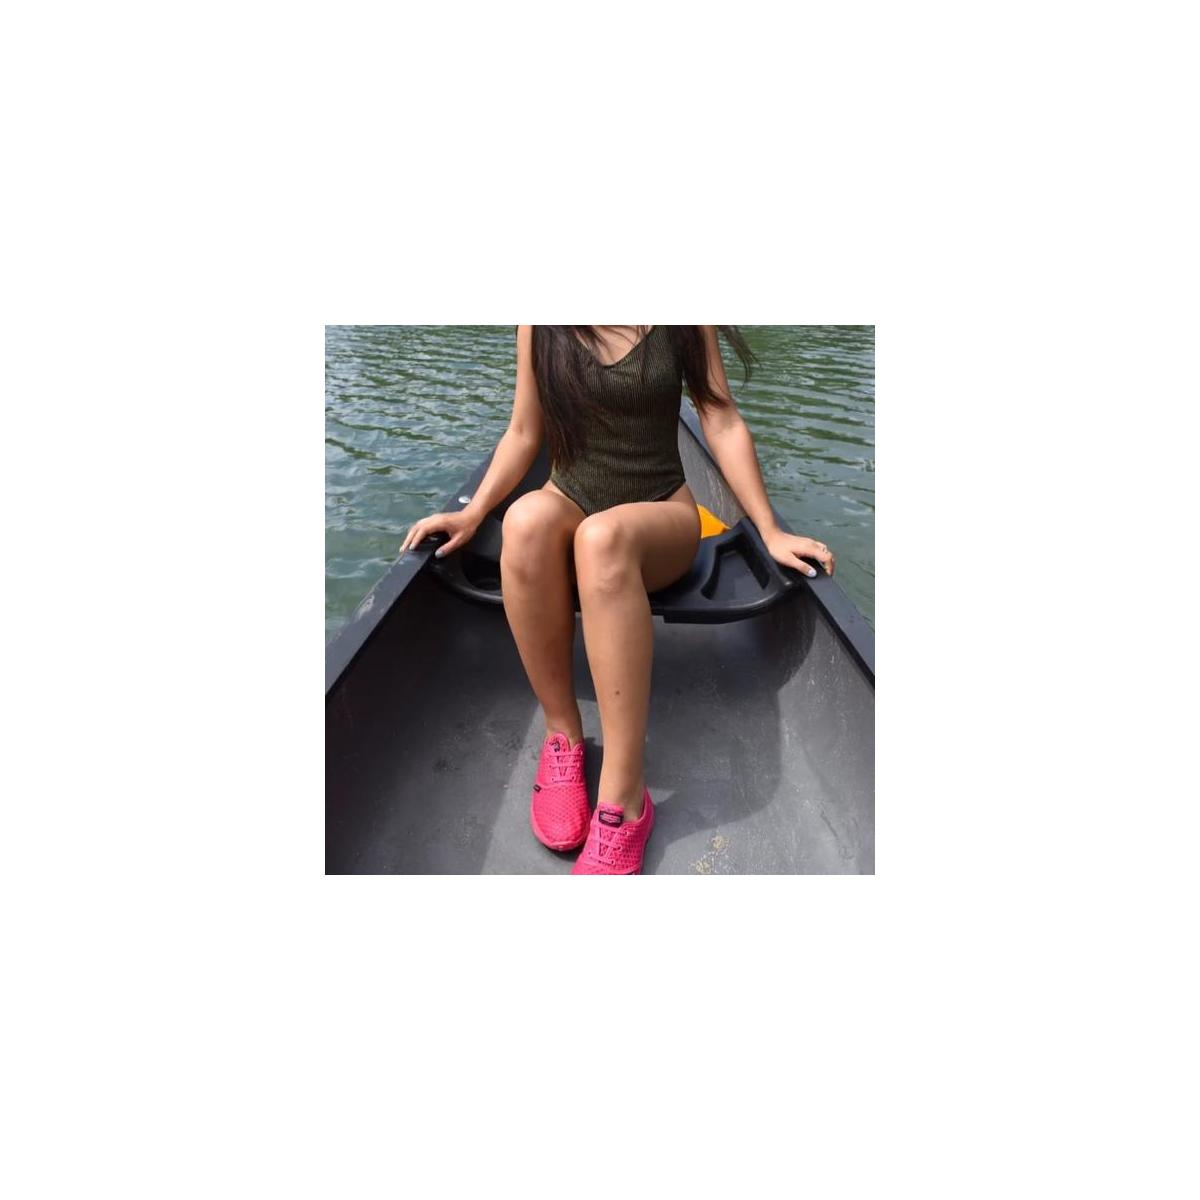 Wave Runner Water Shoes for Women - Quick Drying Water Shoes with Style - Outdoor Lightweight No-Slip Aqua Sneakers